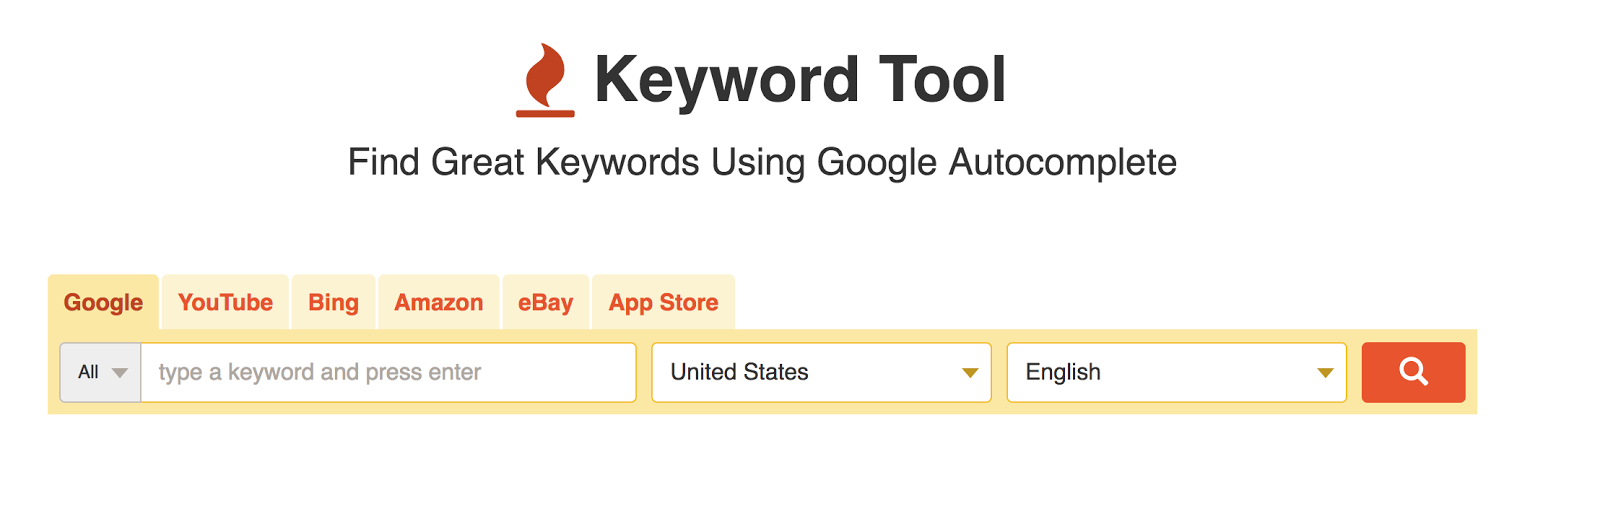 Use a keyword tool for SEO optimized copy.